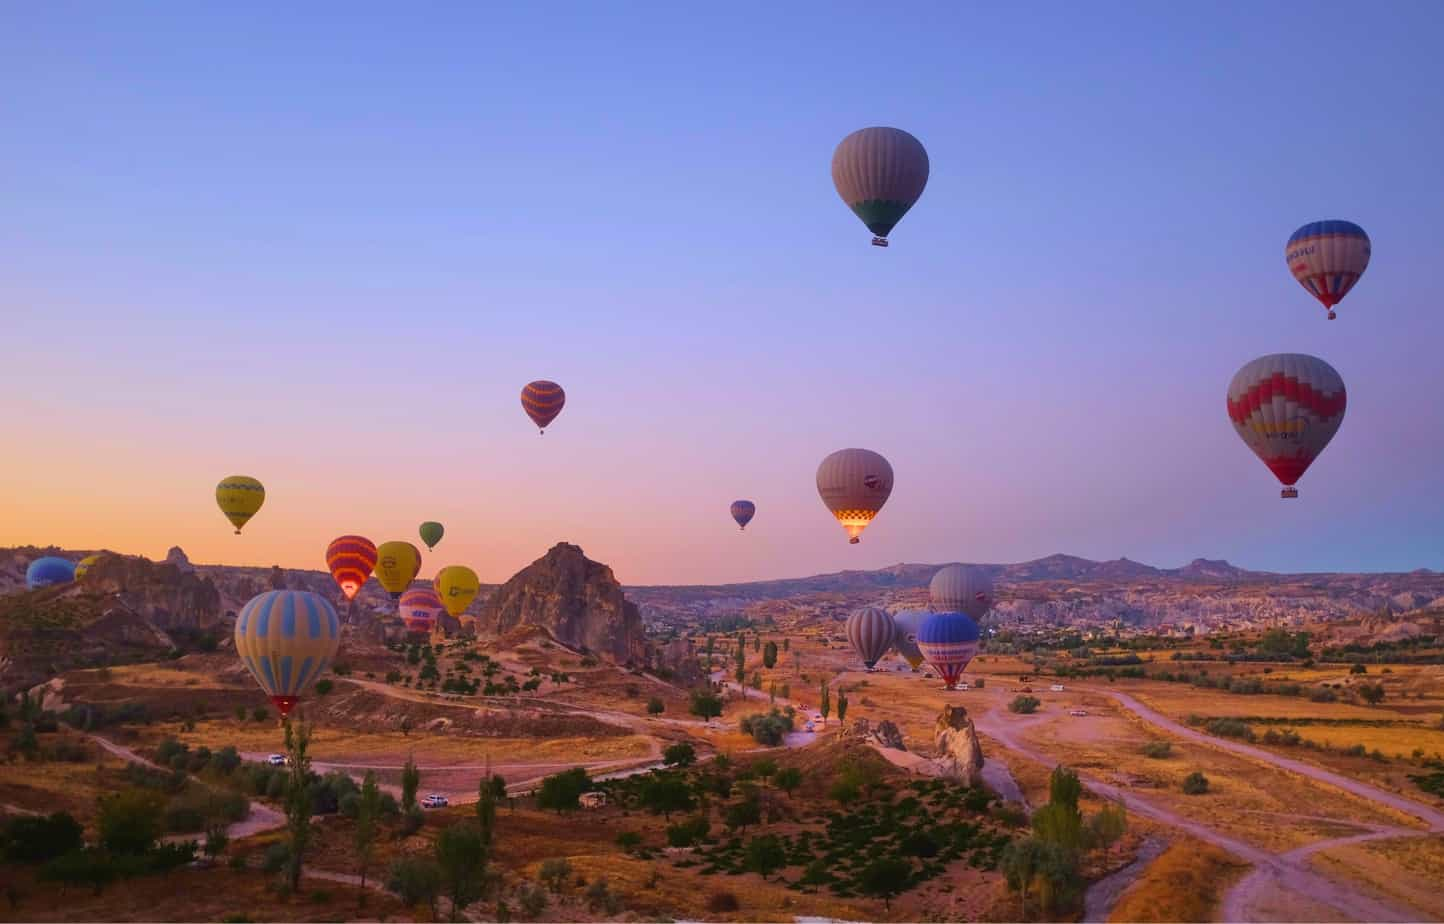 Cappadocia hot air balloon price & other tips